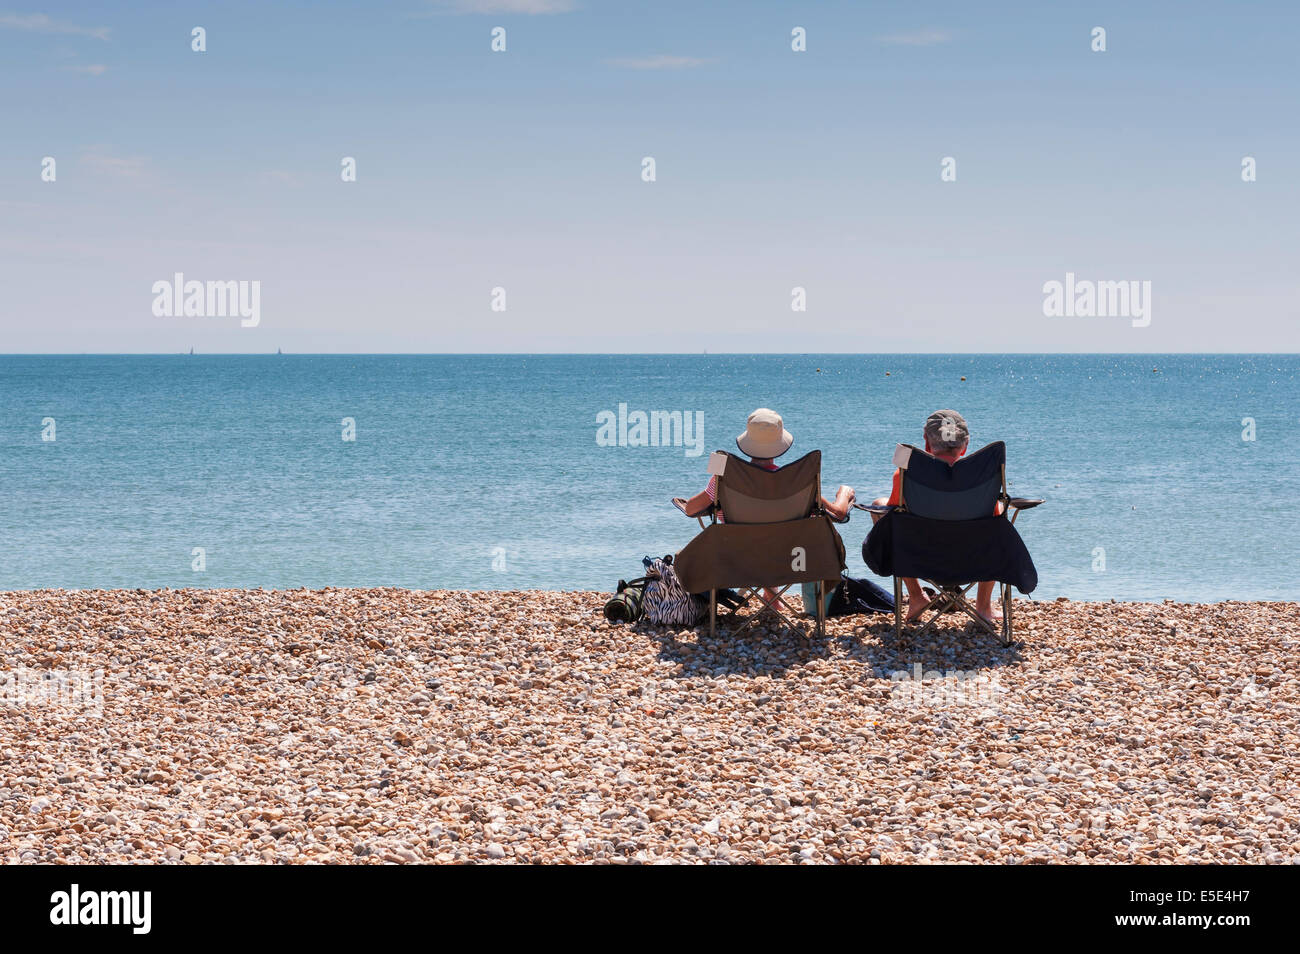 Bognor Regis, West Sussex, UK. 29th July, 2014. With the warm and dry weather continuing on the sunny south coast - Stock Image